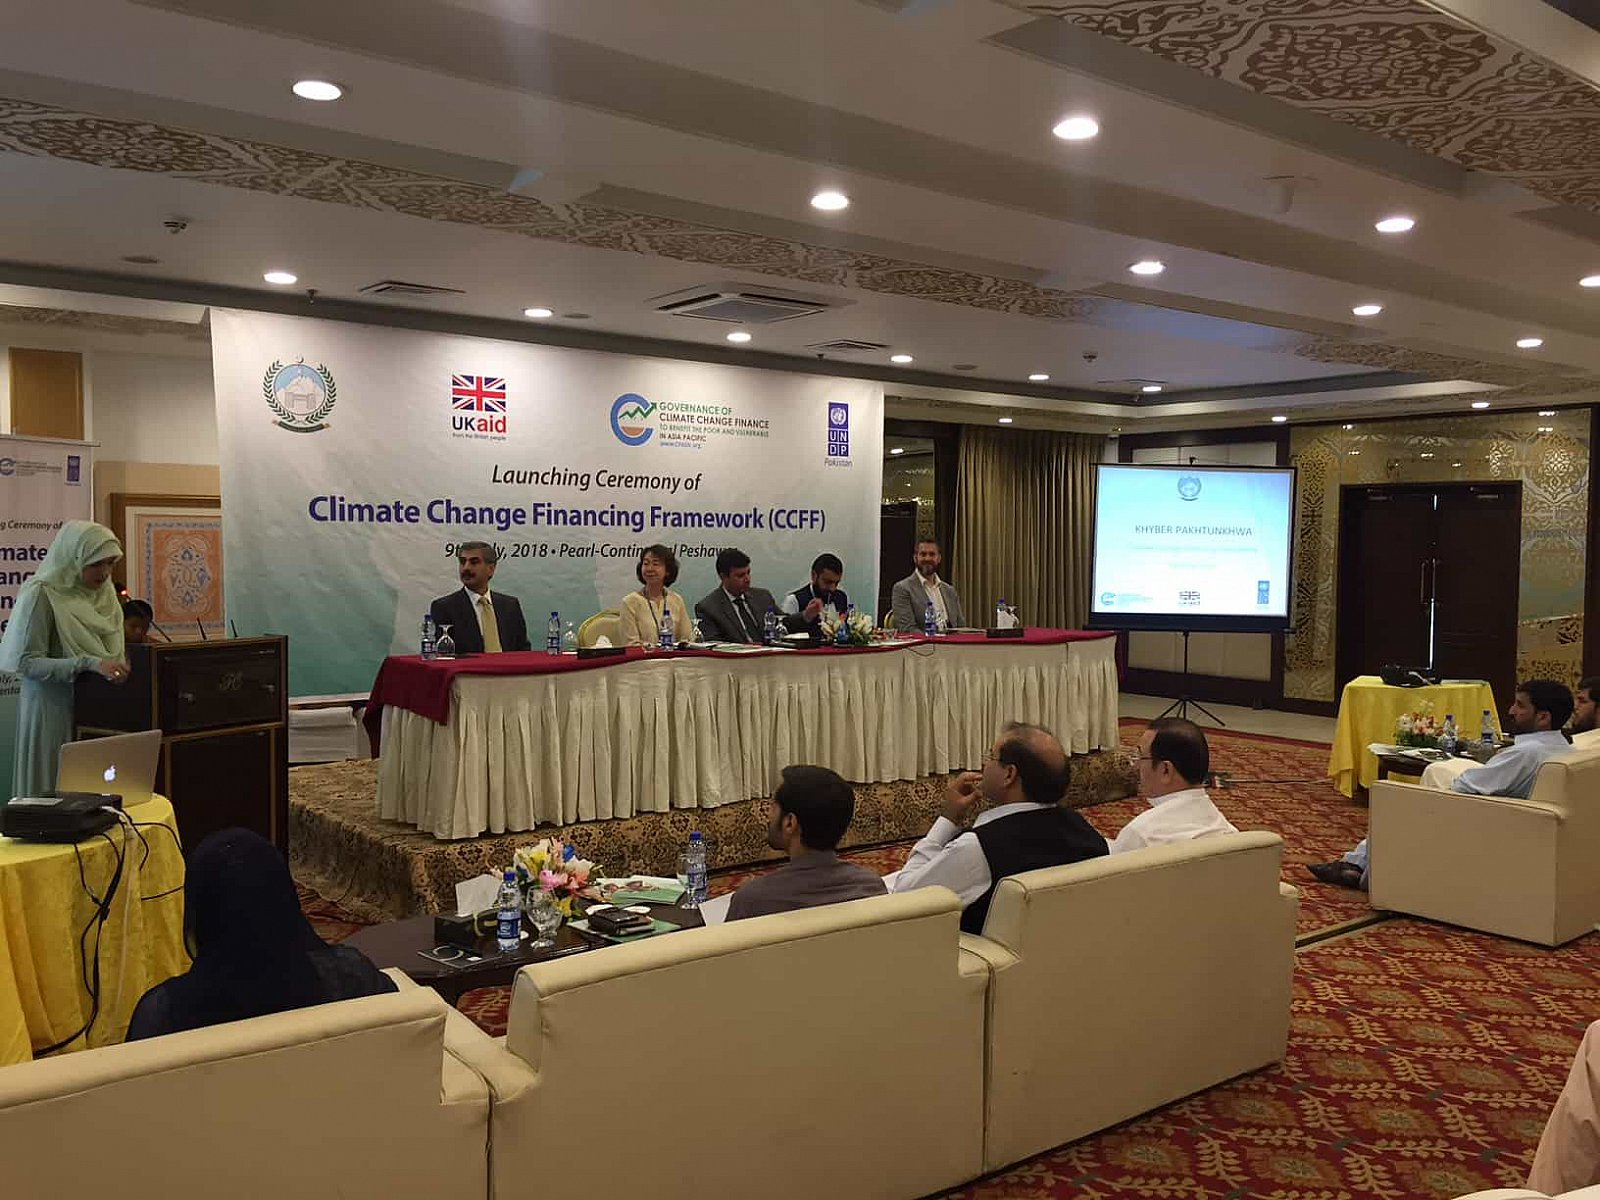 Launching Ceremony of Climate Change Finance Framework(CCF), 9 July 2018